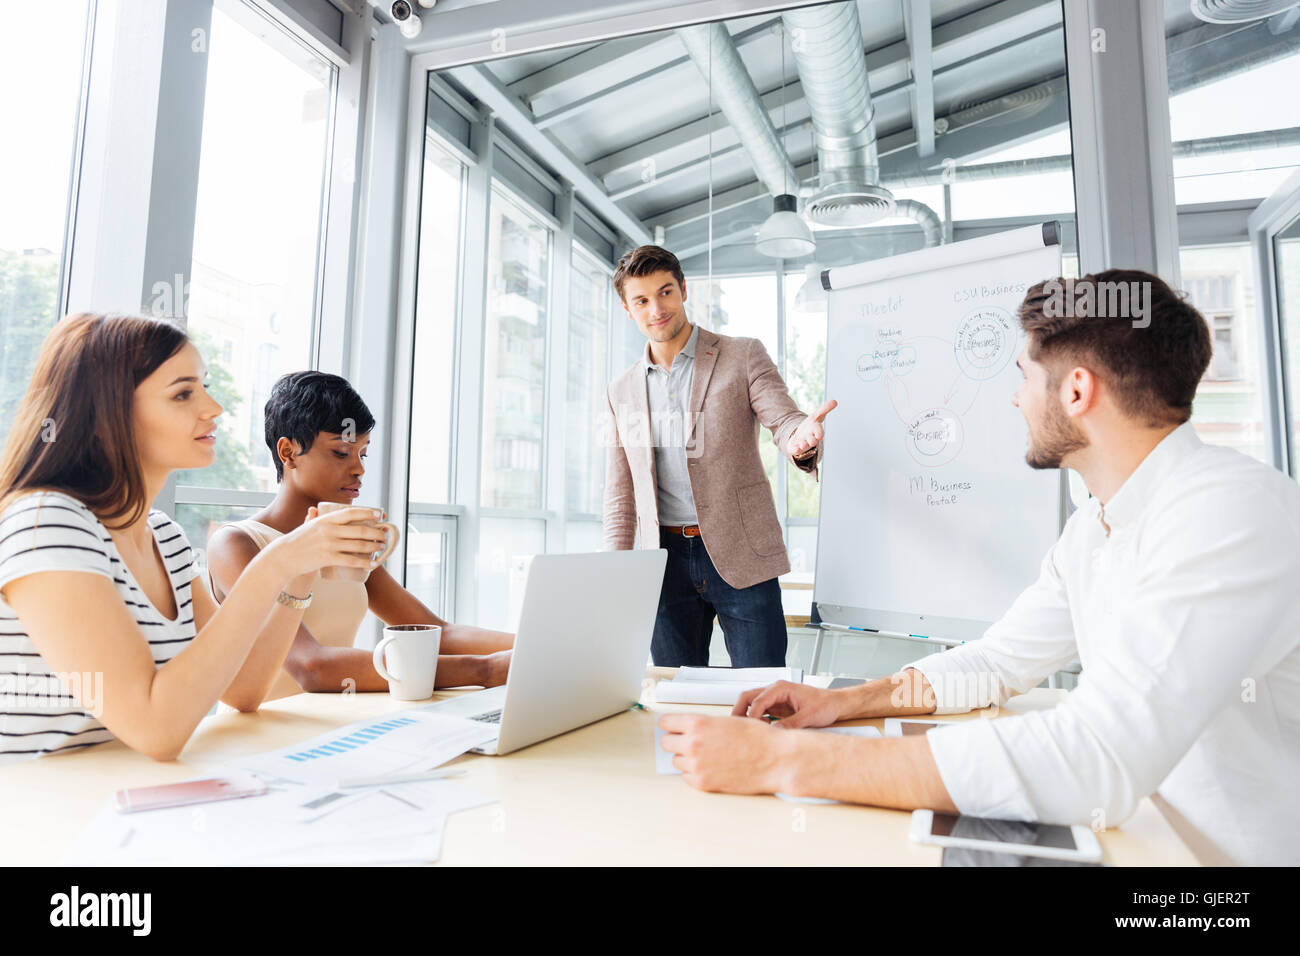 Successful young businessman making presentation of business plan using flipchart in office - Stock Image